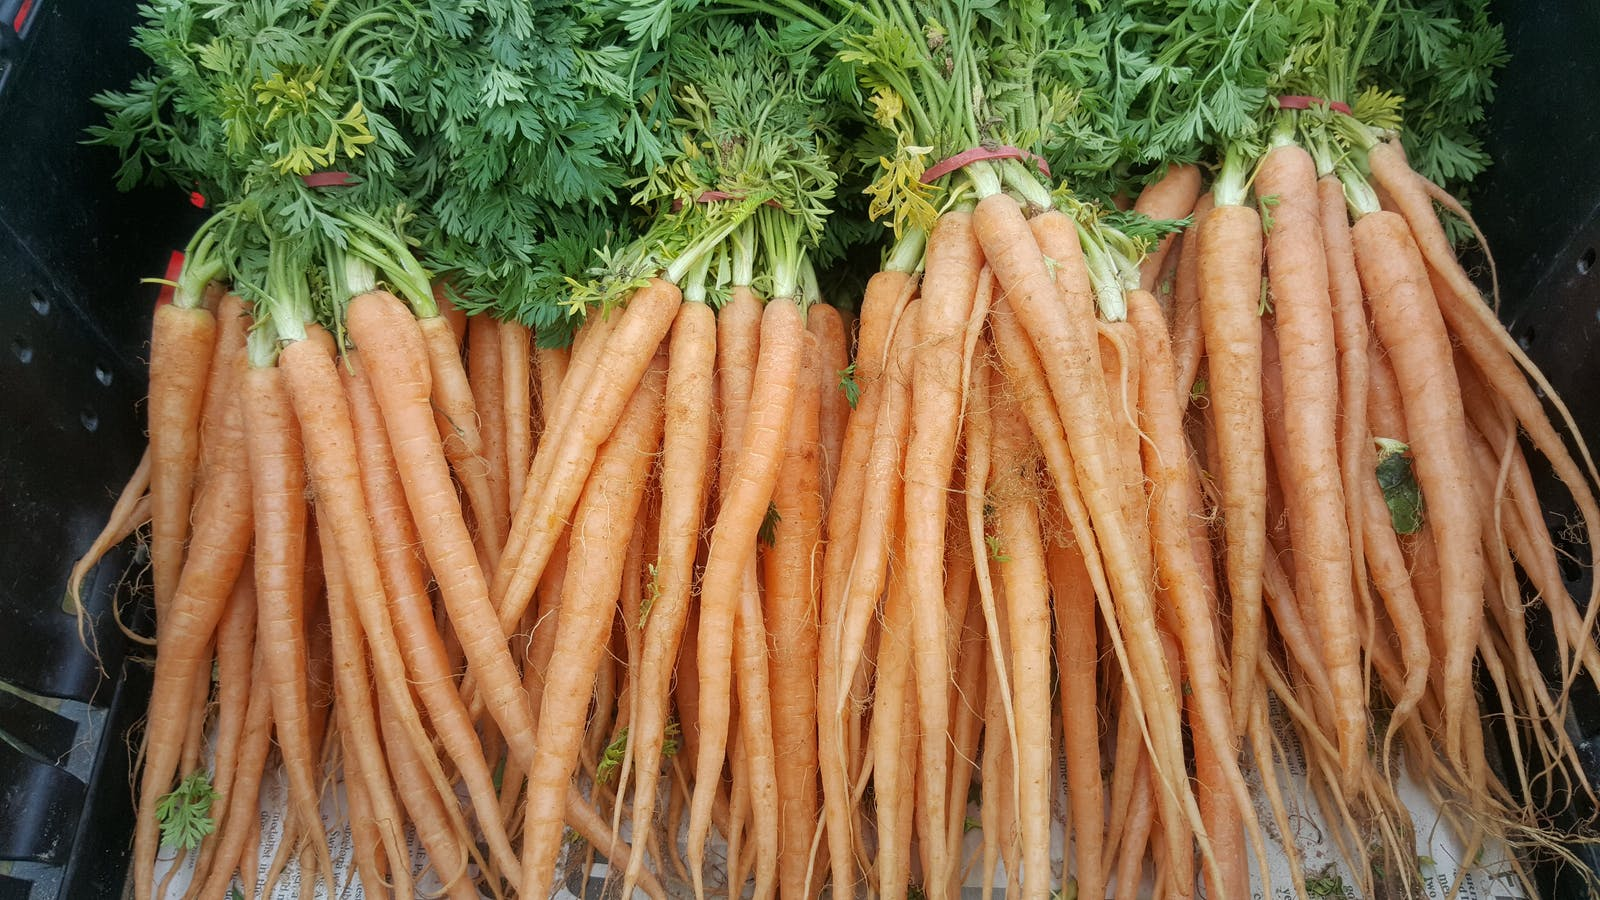 Delicious carrots at the Mansfield Farmers Market